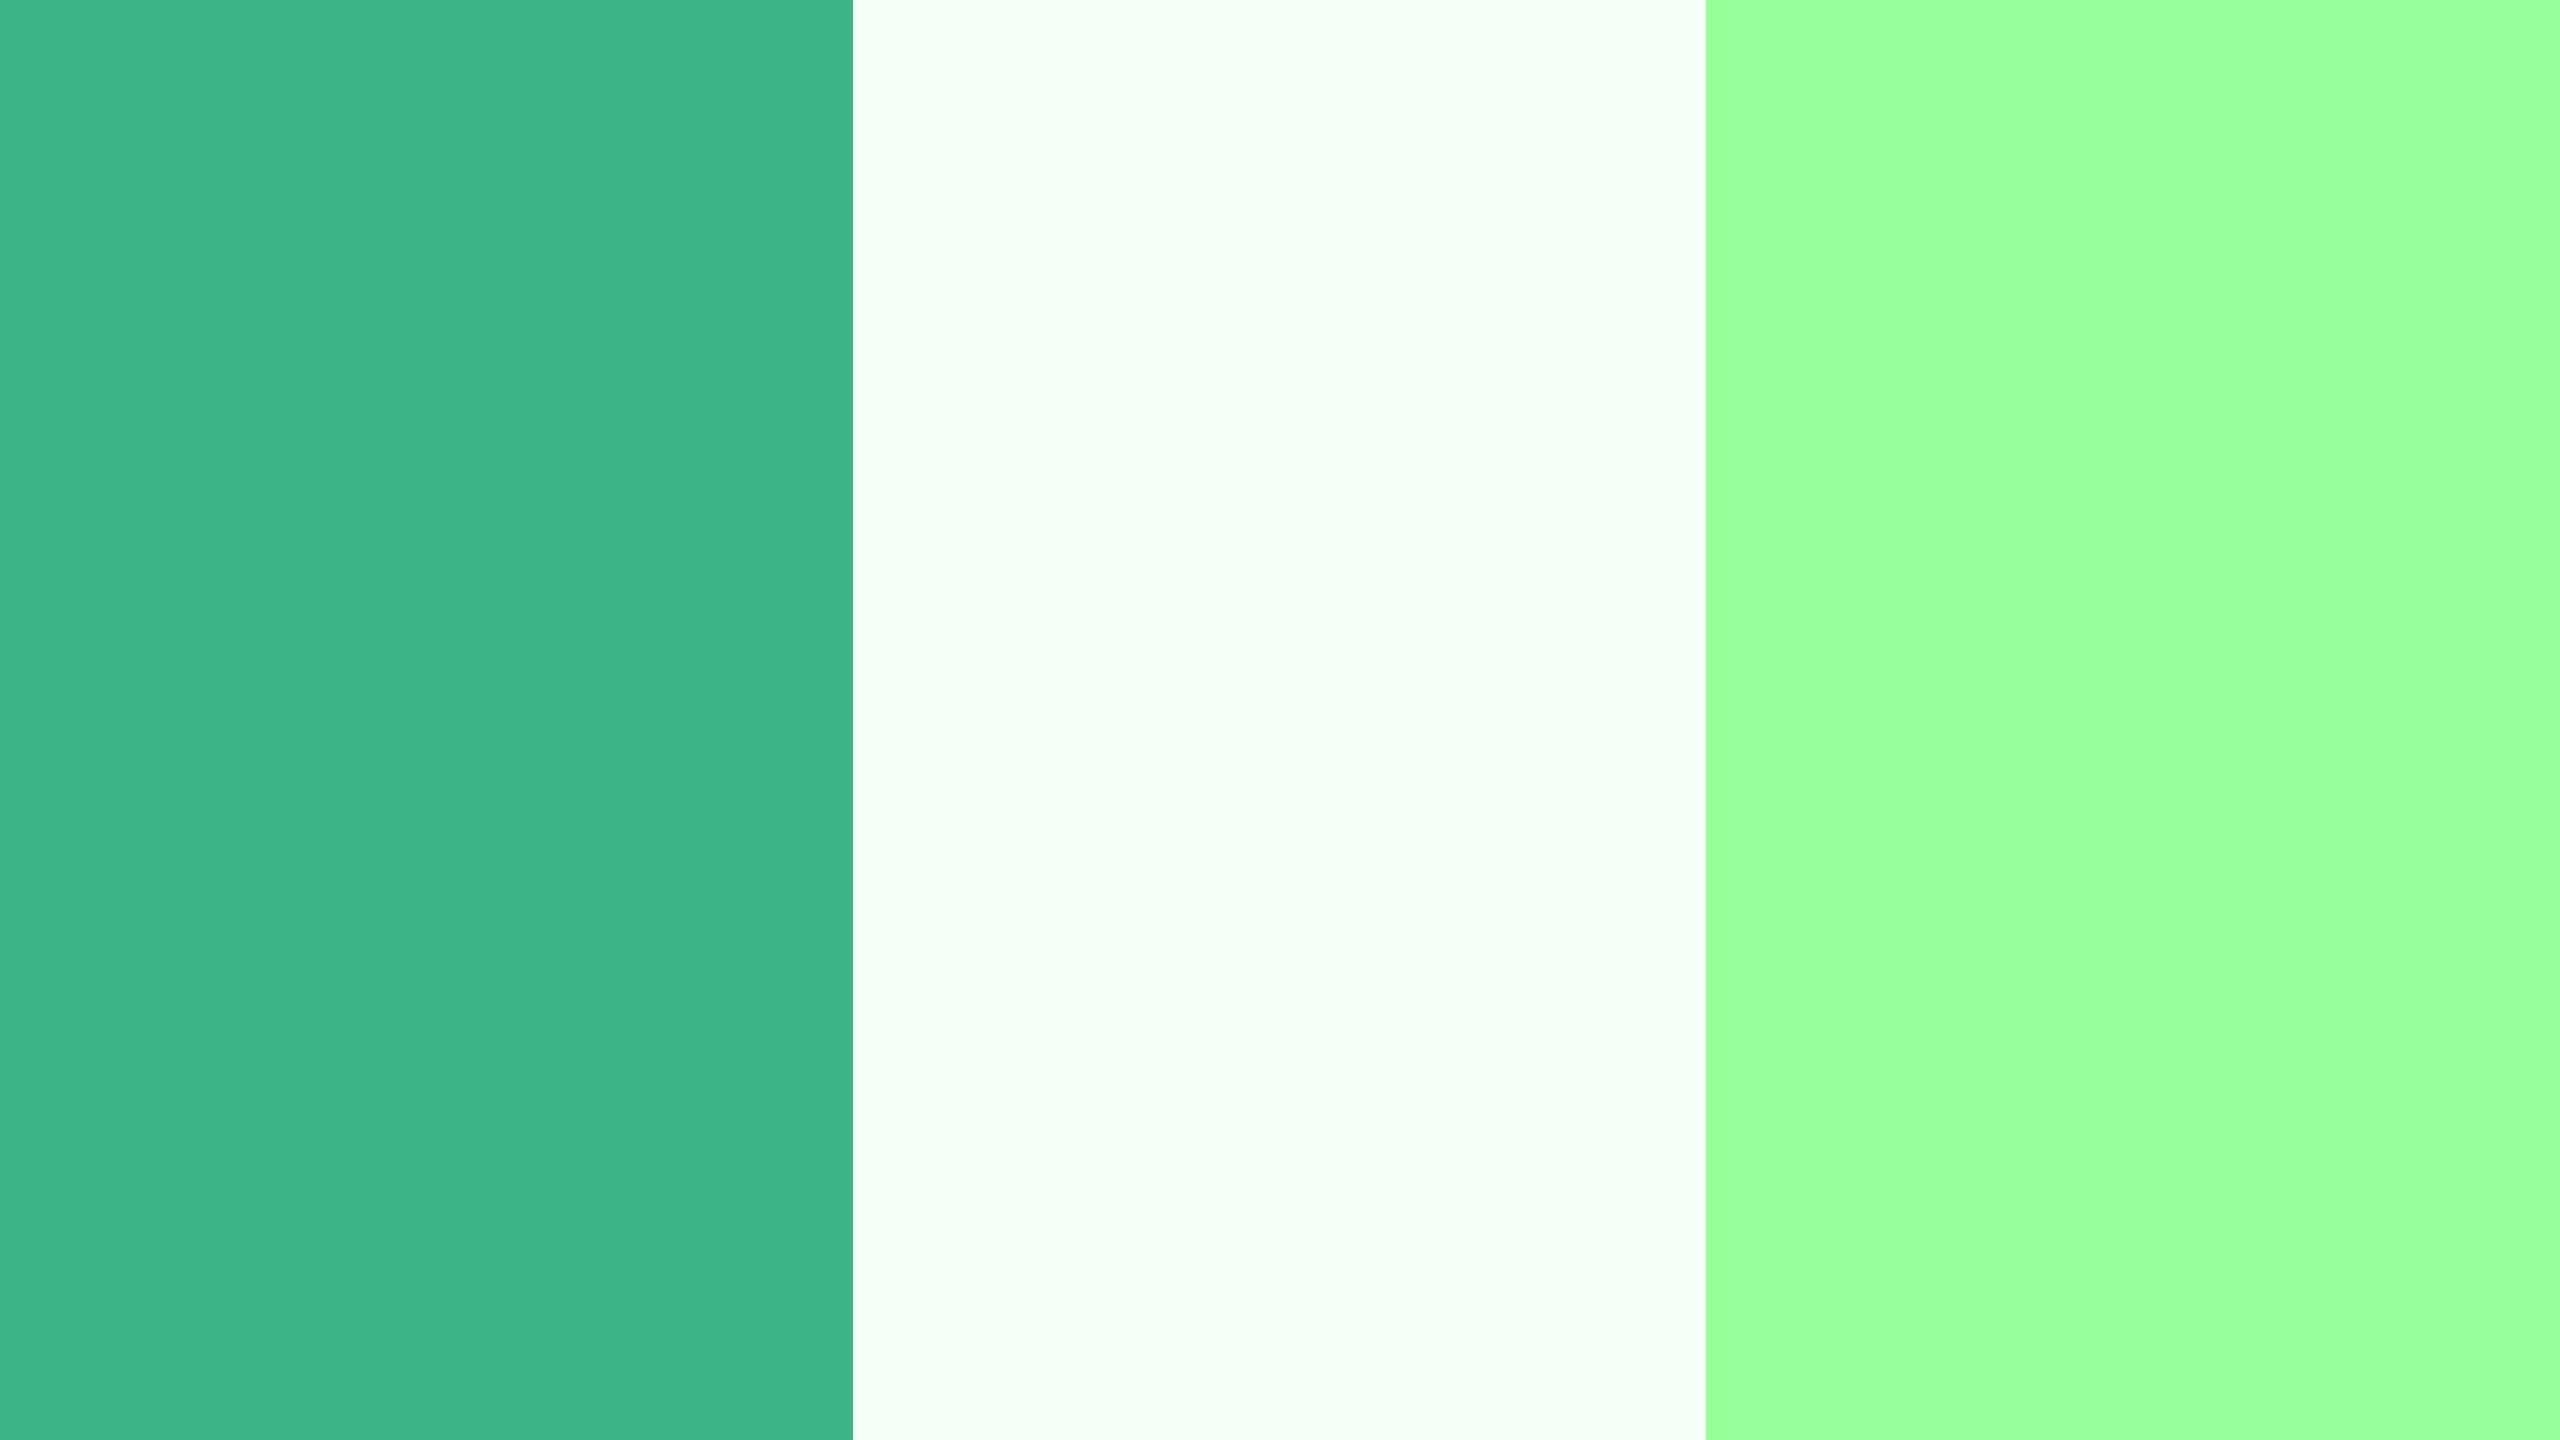 Mint, Mint Cream and Mint Green Three Color Background